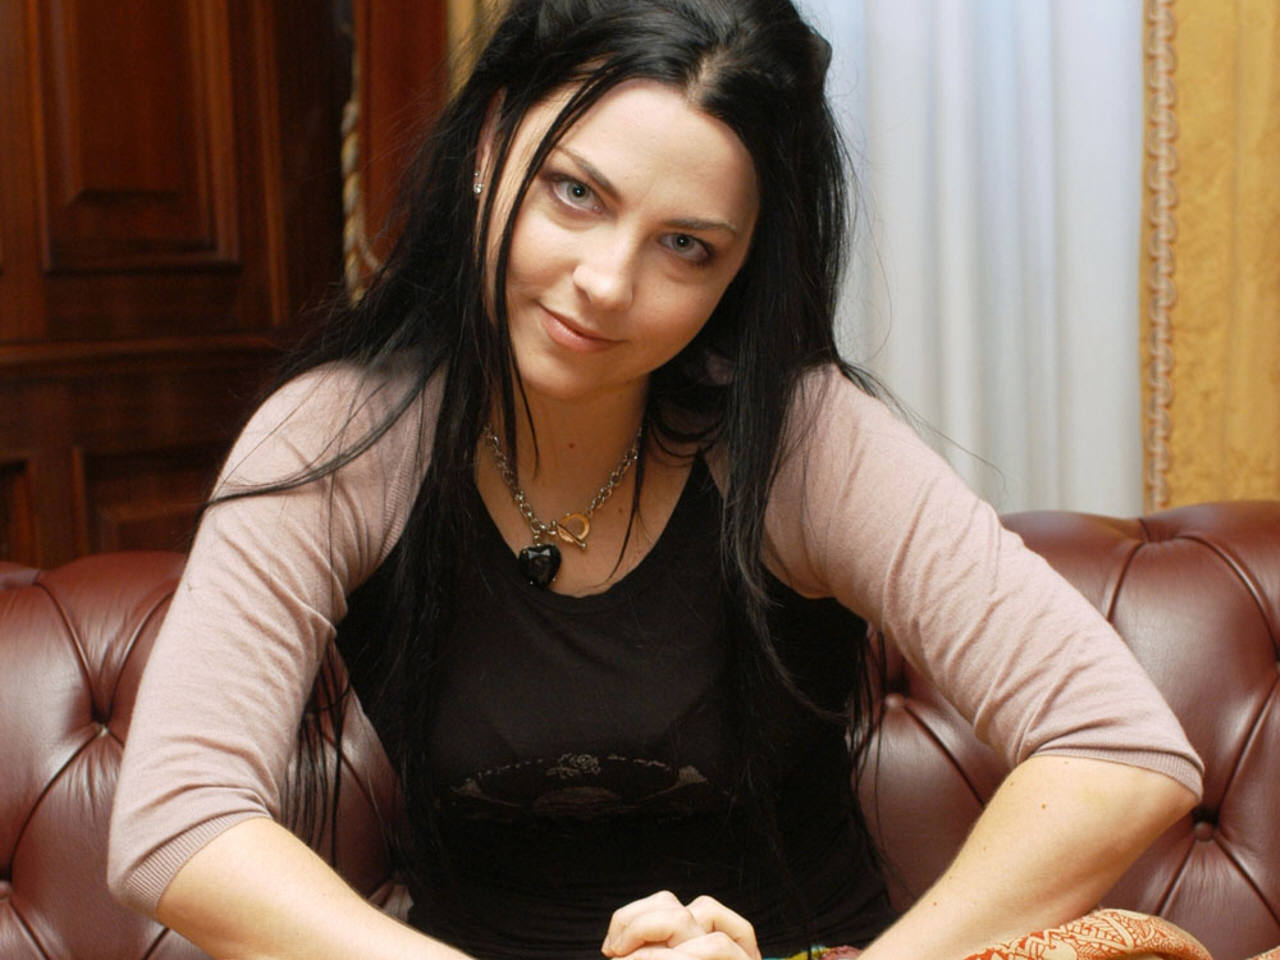 hot sexy pictures of amy lee